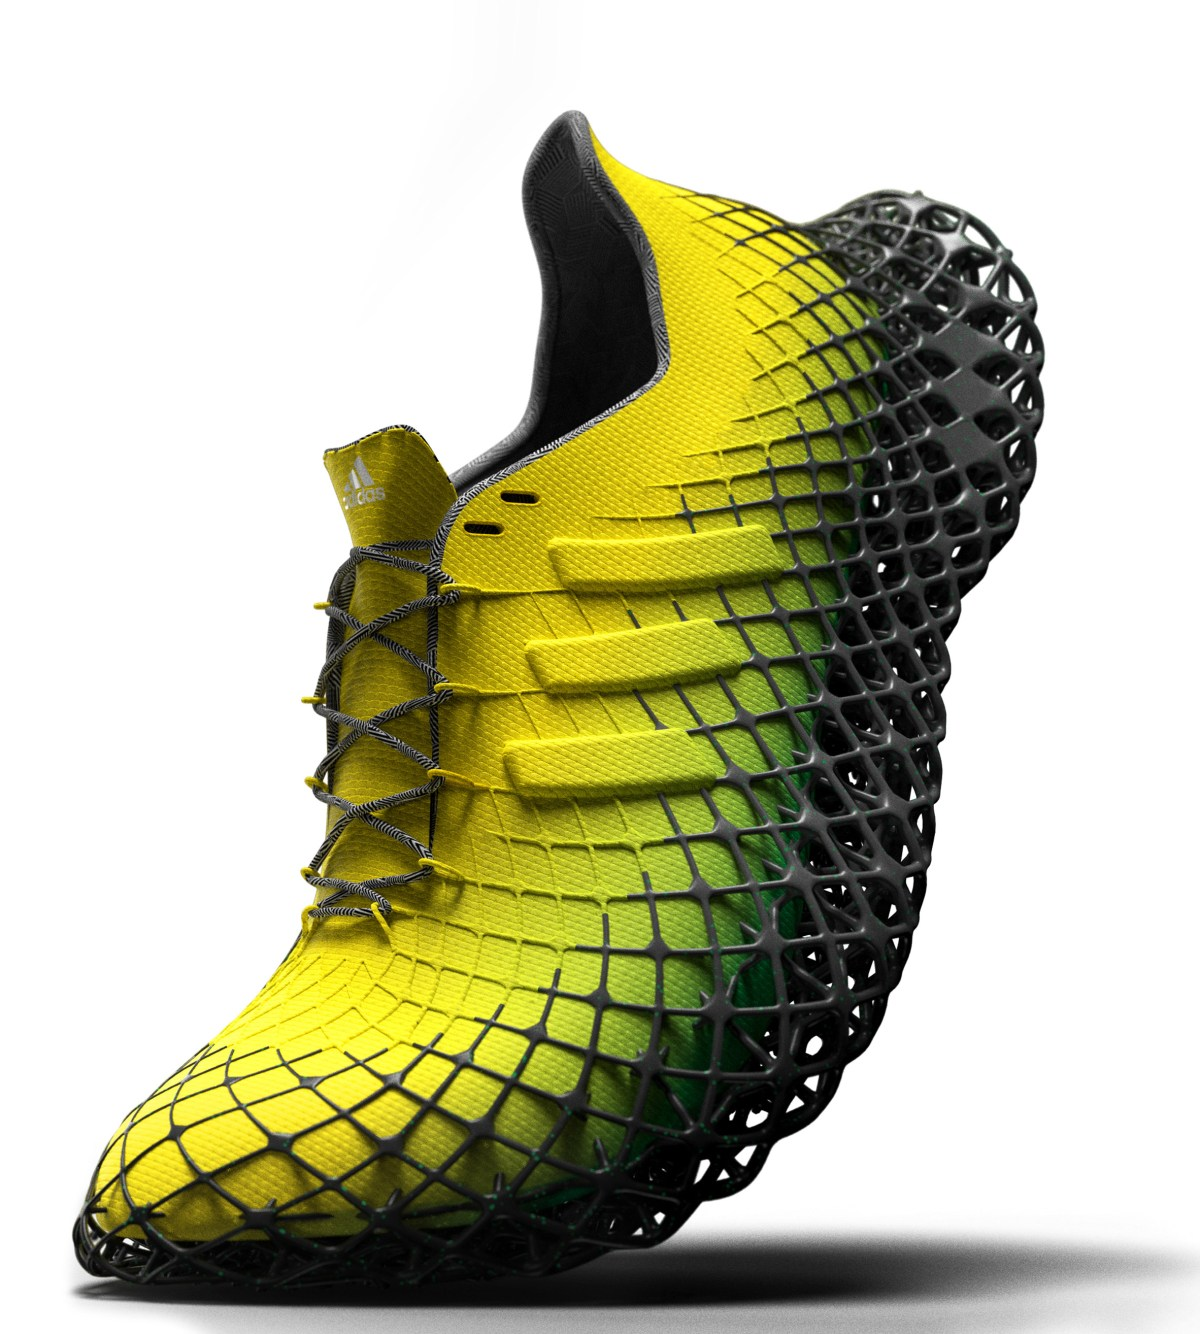 grit-training-shoes-aarish-netarwala-design_dezeen_2364_col_0